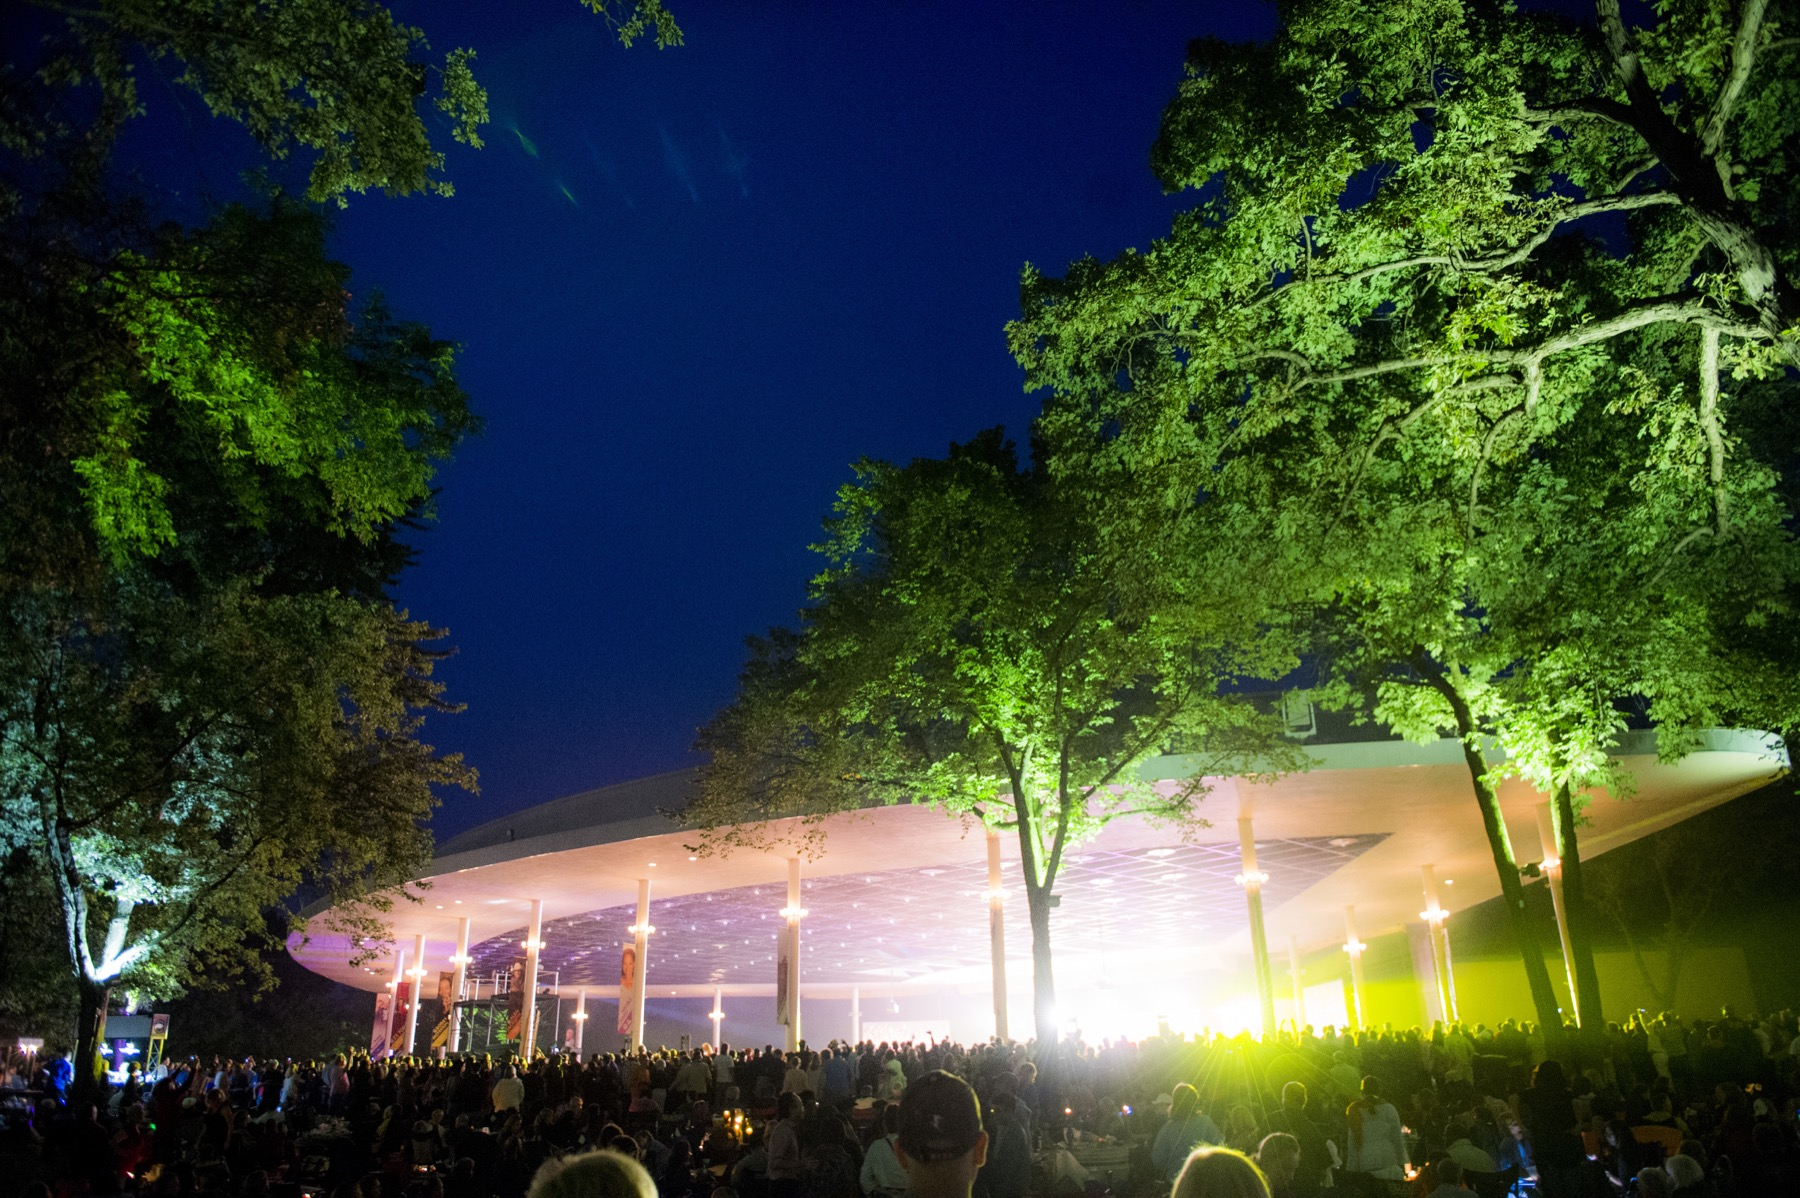 Chicago Symphony Orchestra performs Ghostbusters at Ravinia Festival